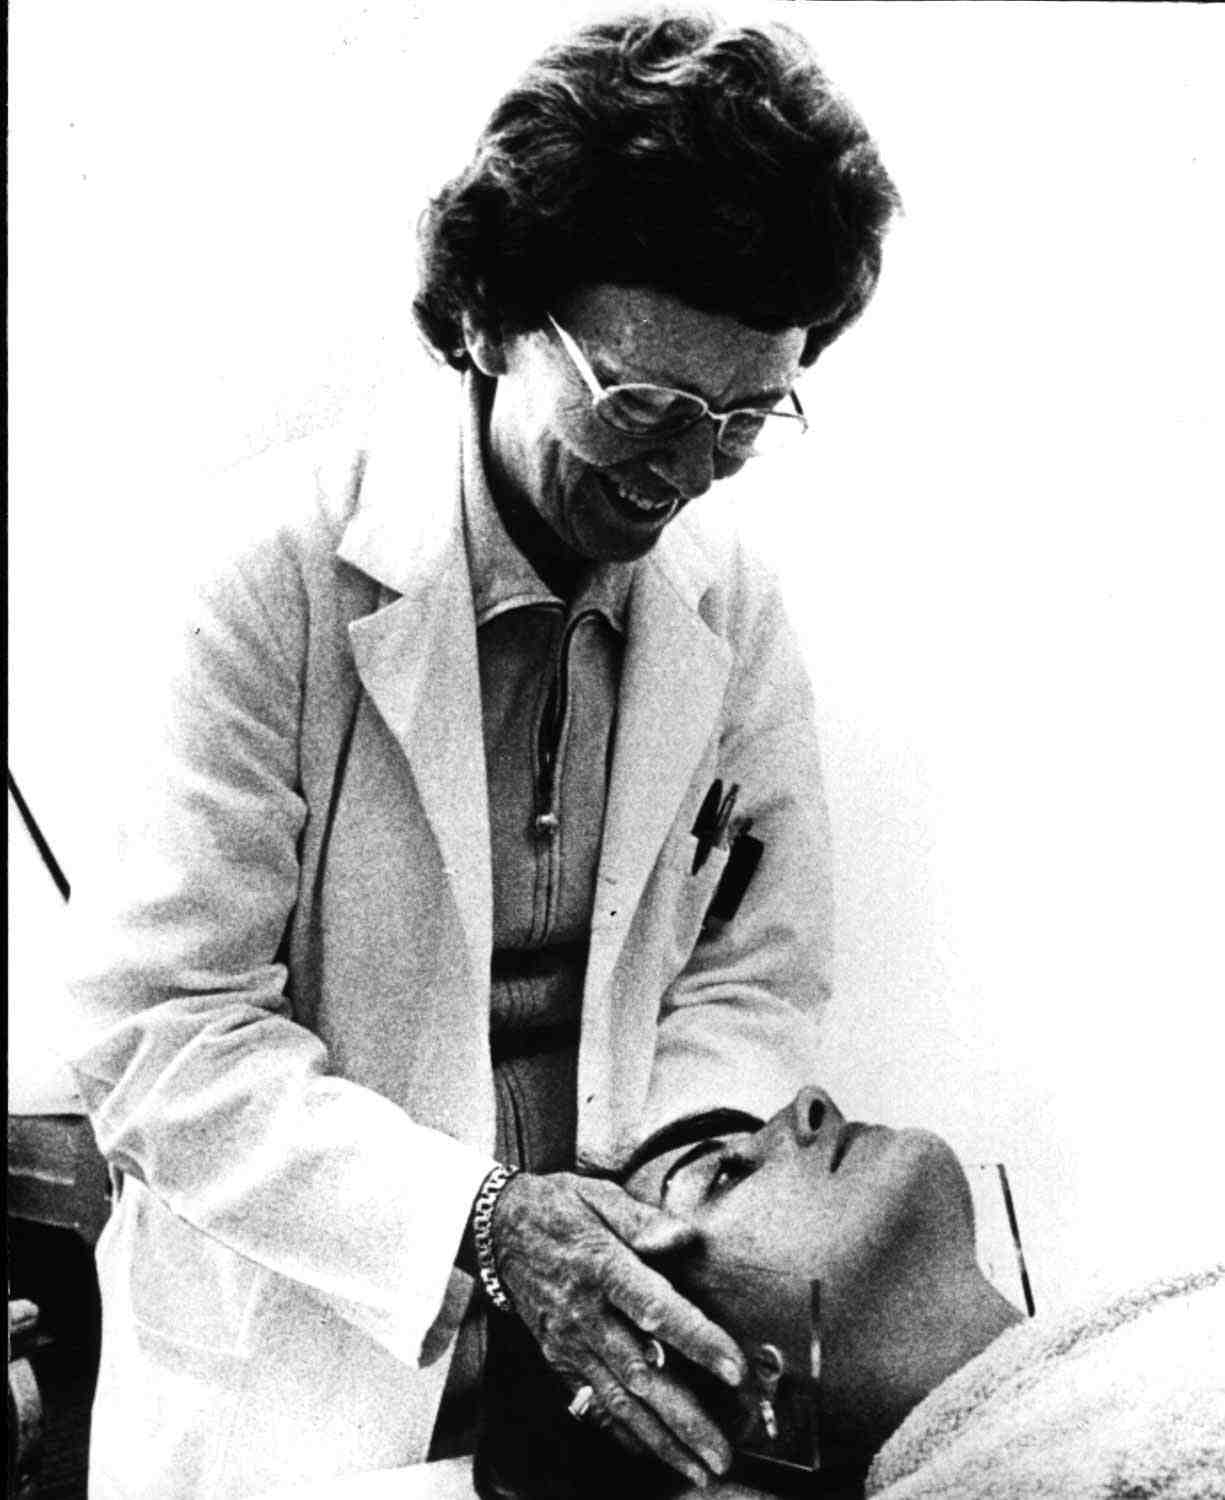 Dr. Peters adjusting a patient for radiotherapy. Collection of Dr. Charles Hayter.